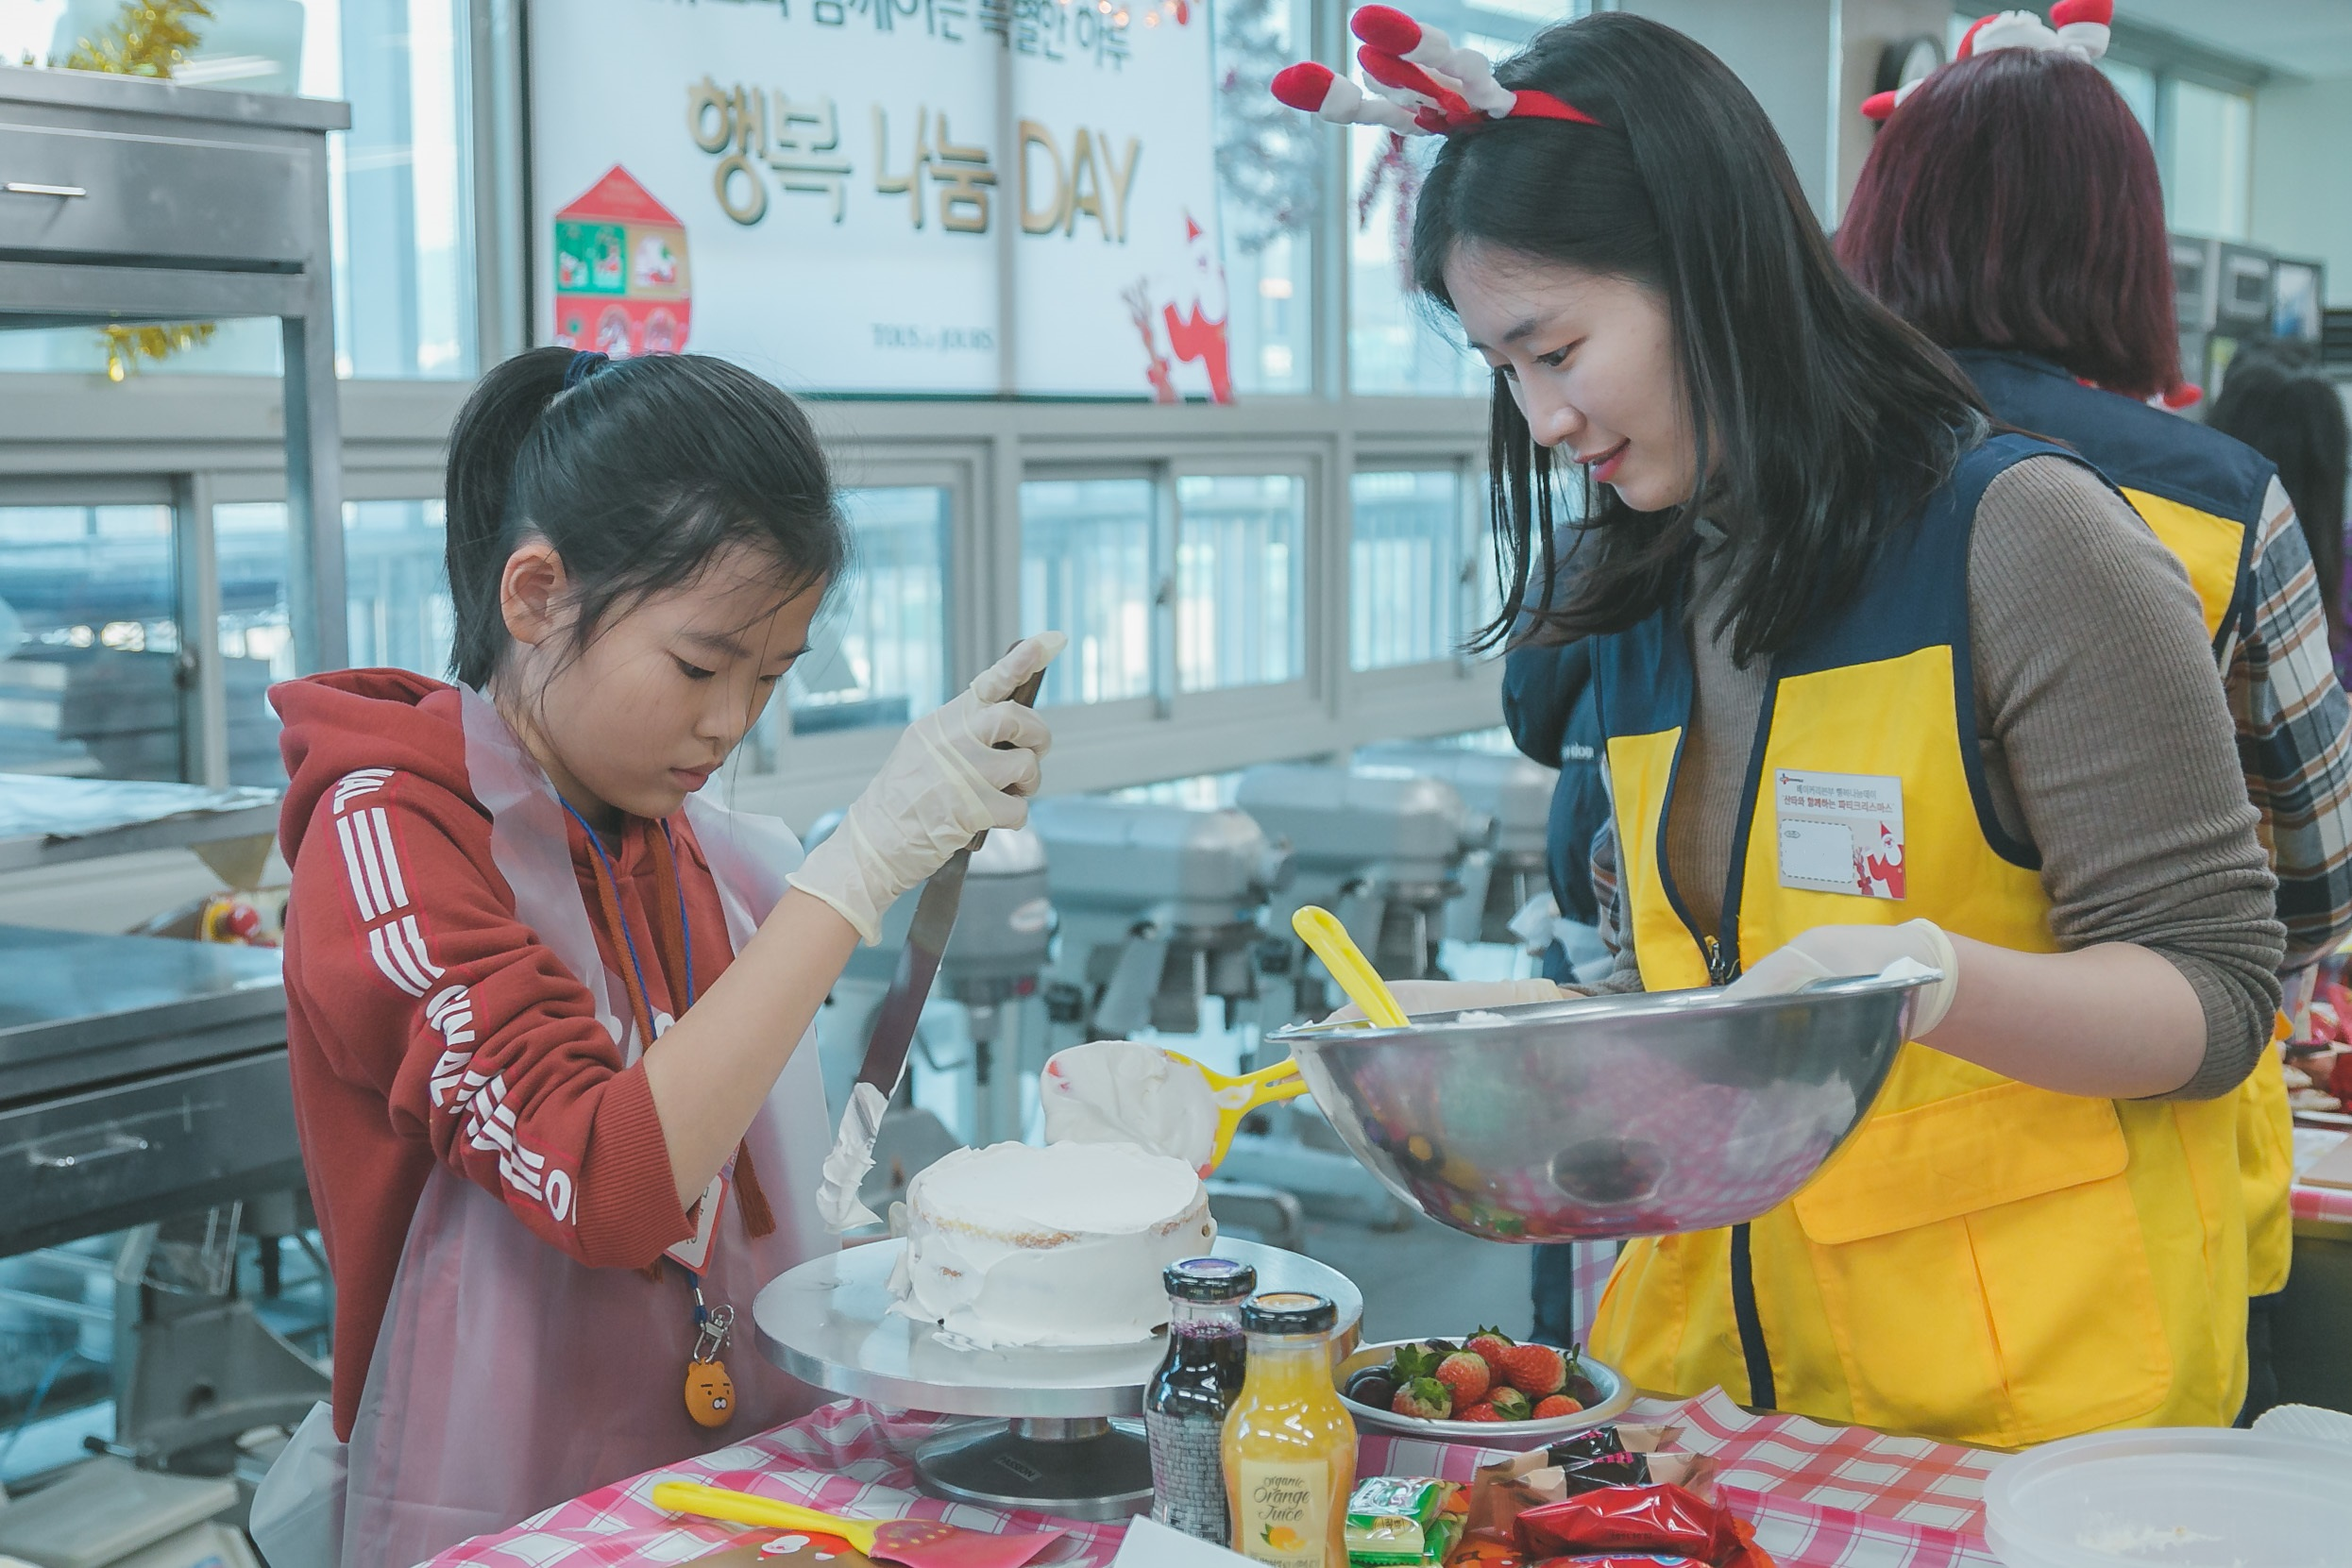 CJ Foodville, headed by CEO Seong-pil Jeong, held a Christmas cake baking class, attended by children invited from local children's centers.